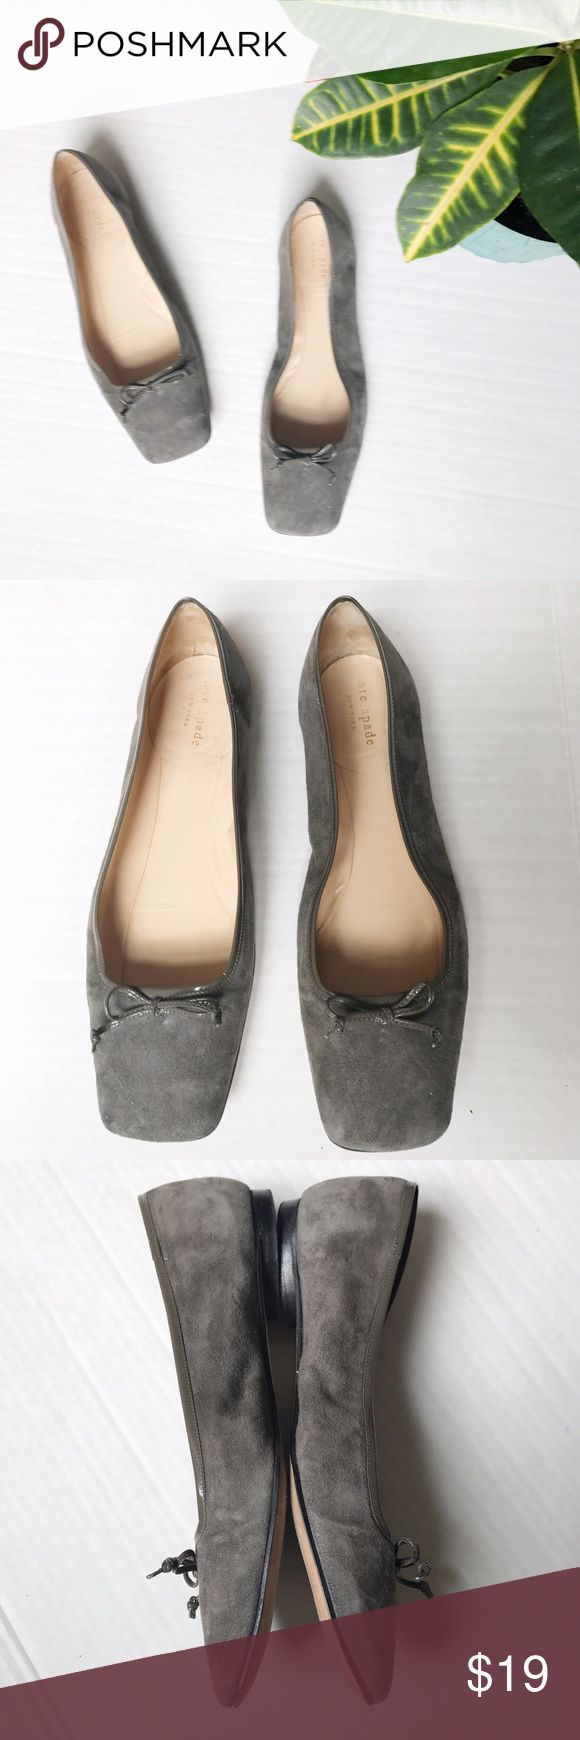 Kate Spade Suede Square Toe Ballet Flat Suede square toe ballet flats from Kate spade. Size: 9.5. Color: gray. Suede ballet flats with bow at square toe. Slight half inch heel. Some minor wear at the toe (shown). Comes with dust bag and box. kate spade Shoes Flats & Loafers